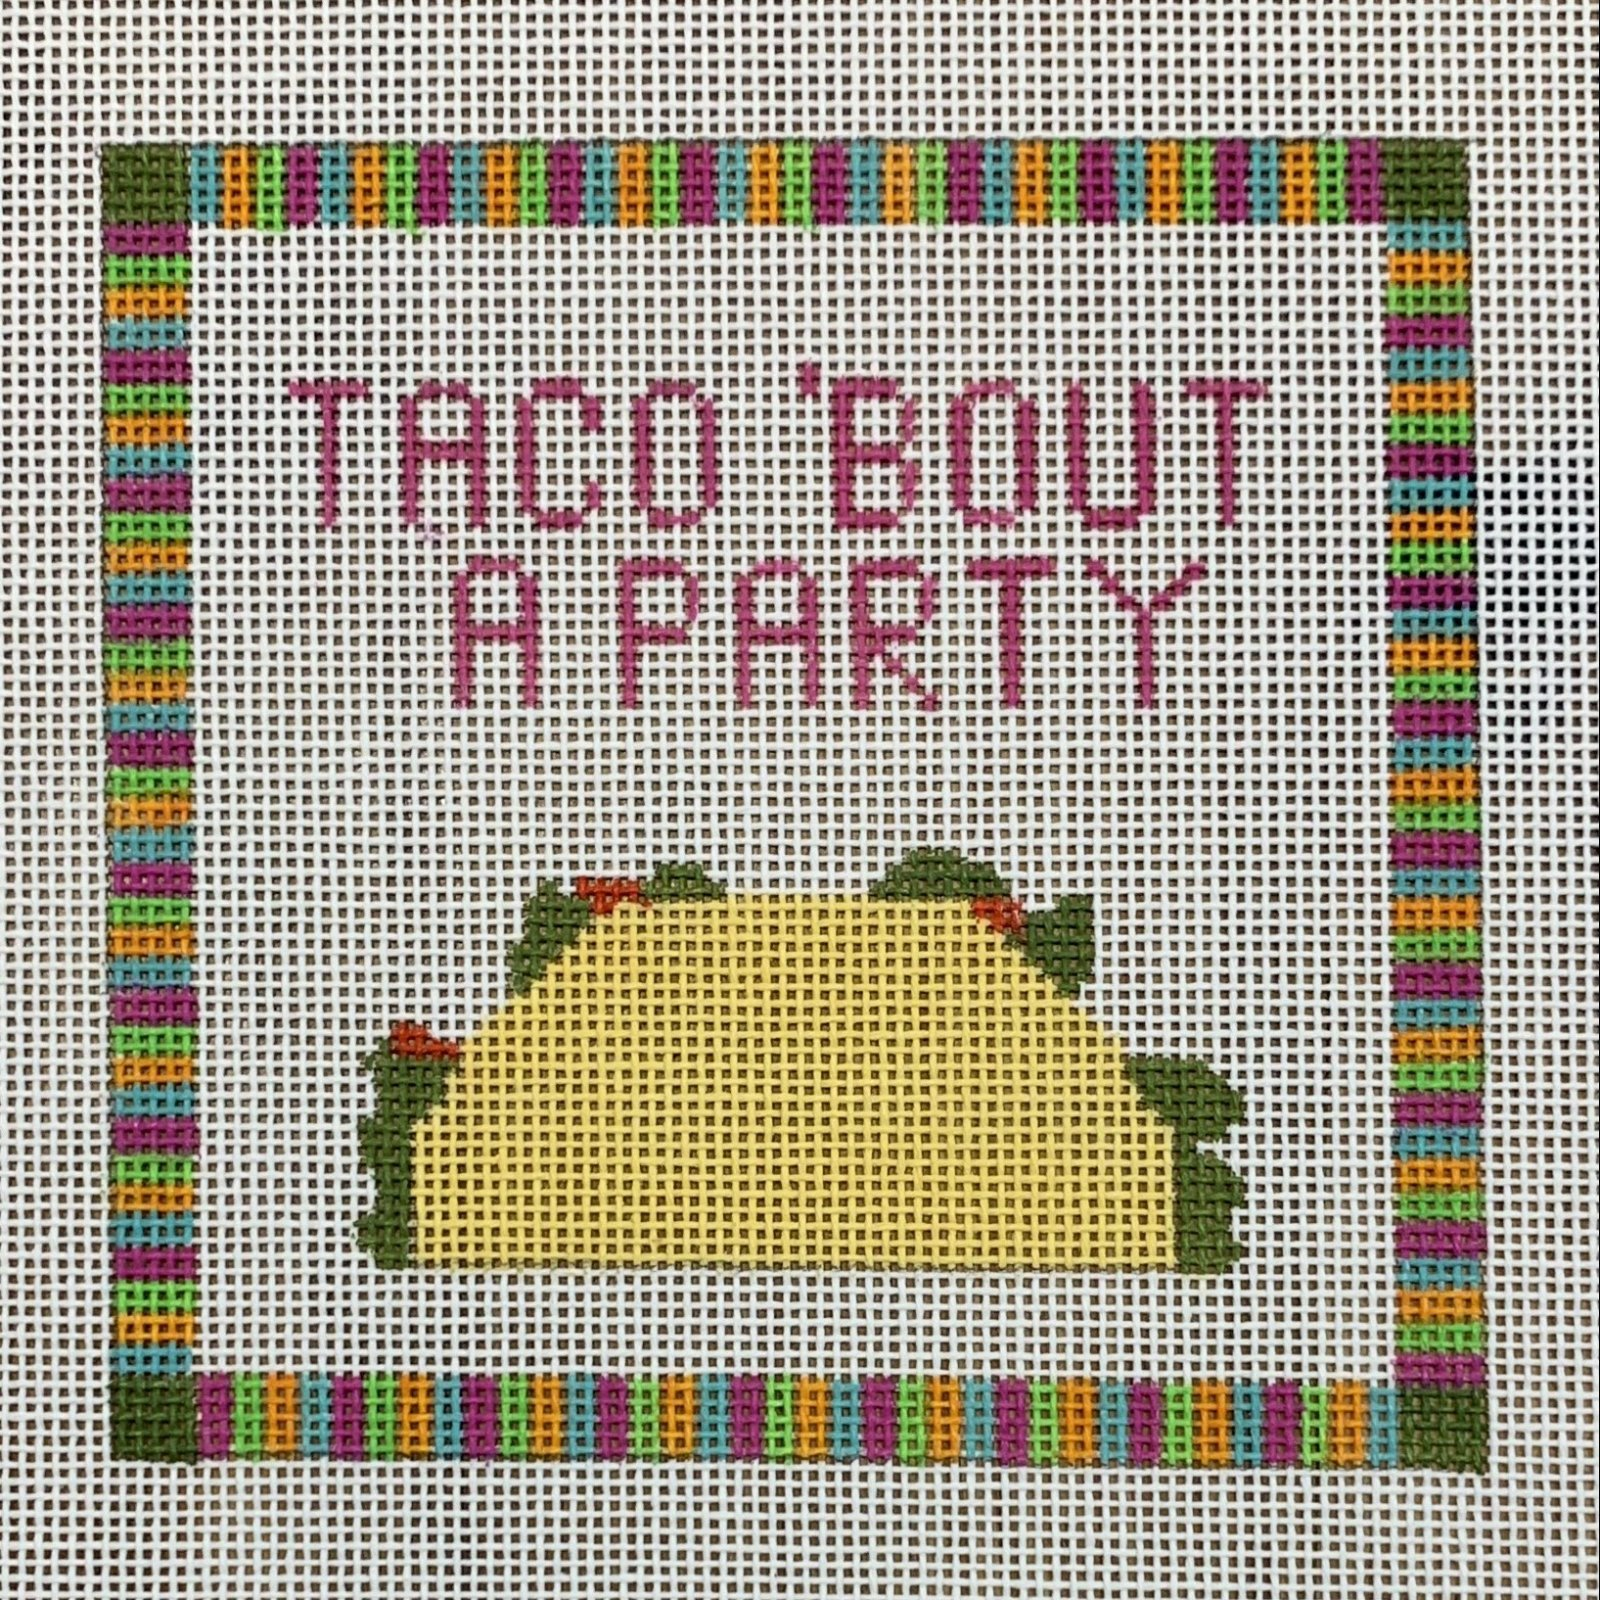 Taco 'bout a Party